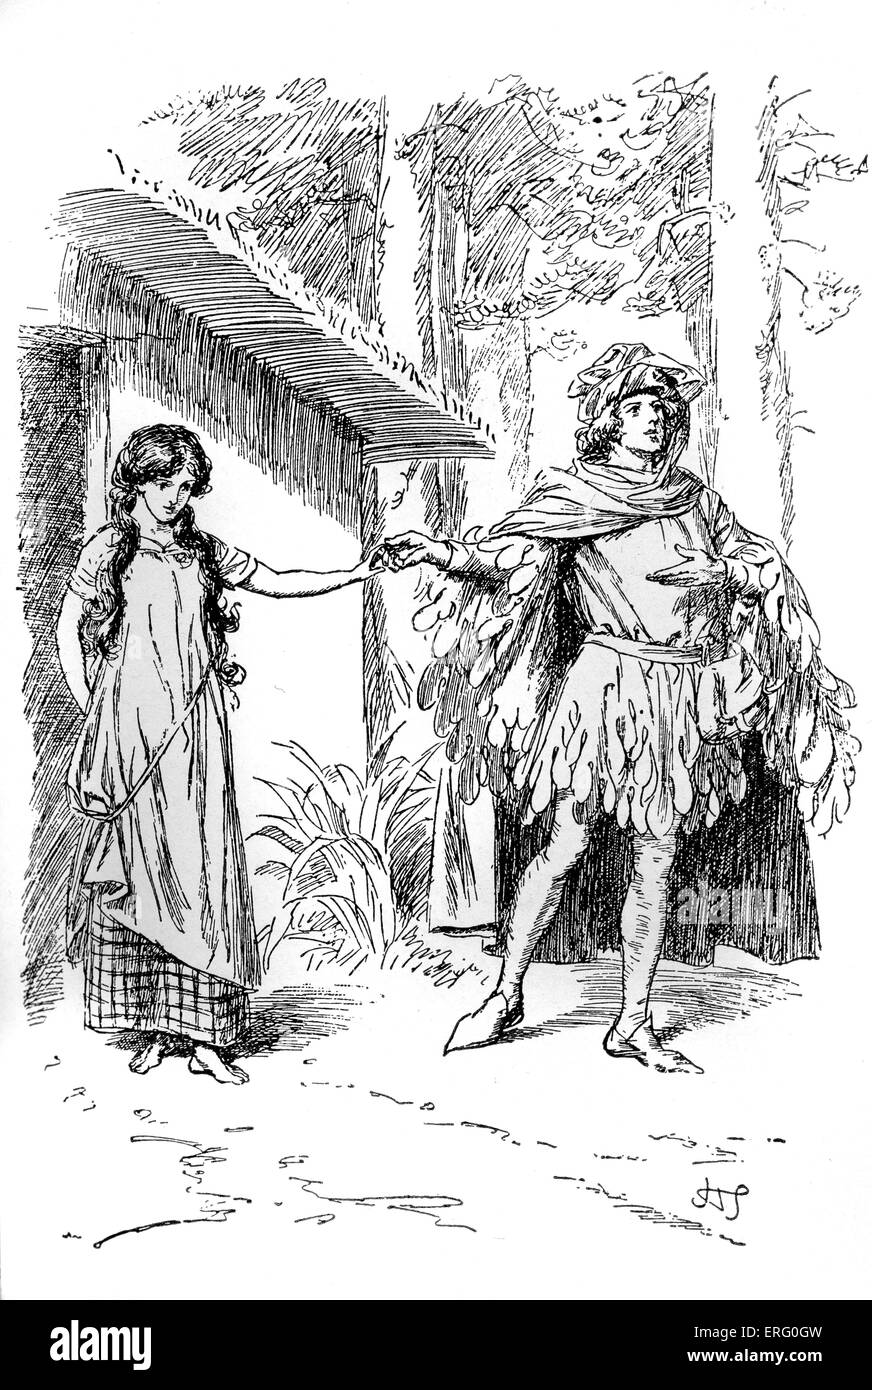 Patient Griselda -The Marquis presents his chosen bride, the poor Griselda, to the people of Saluzzo. Drawing by - Stock Image